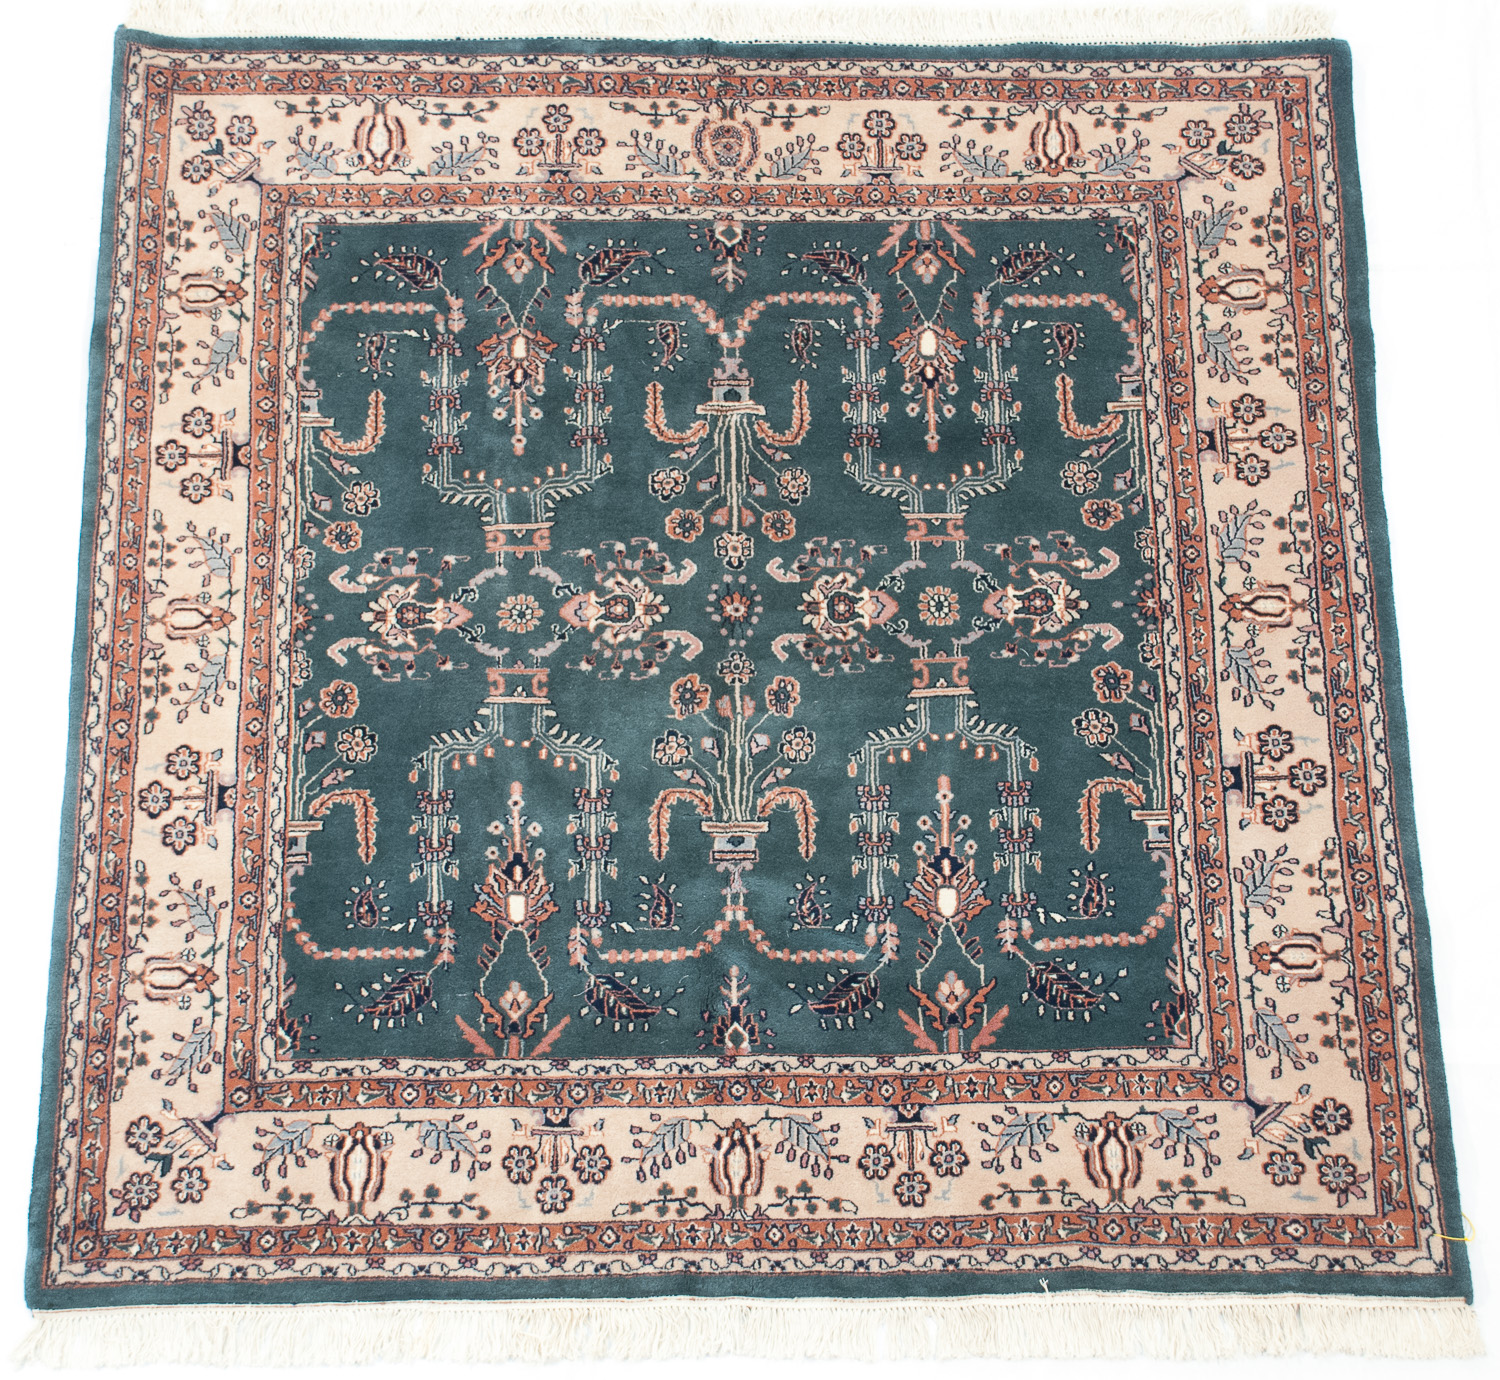 RRA 6x6 Square Rug Indo Persian Sarouk Design Teal Green